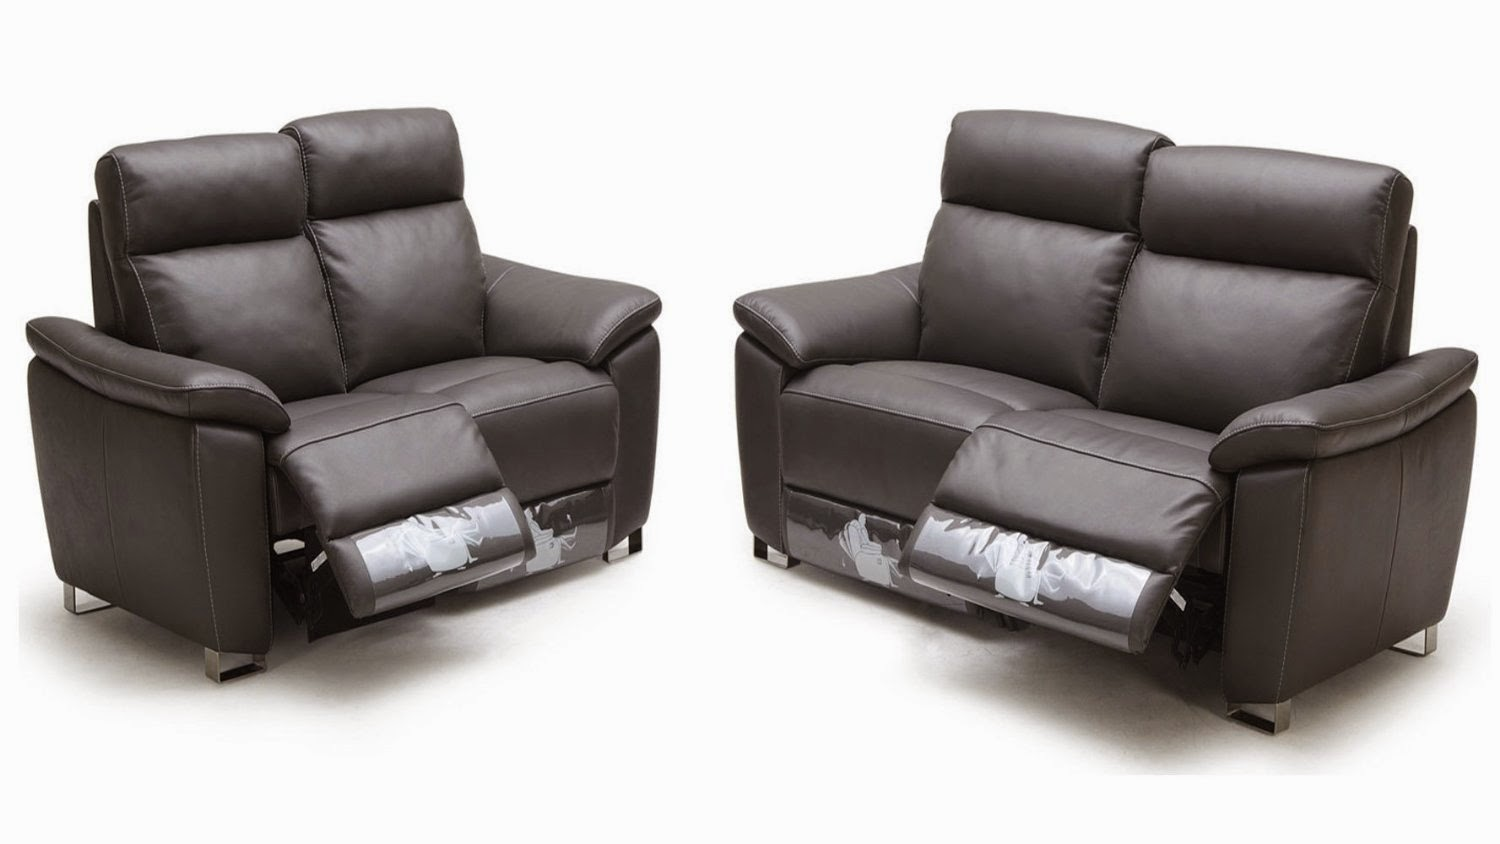 Two Seater Reclining Leather Sofas